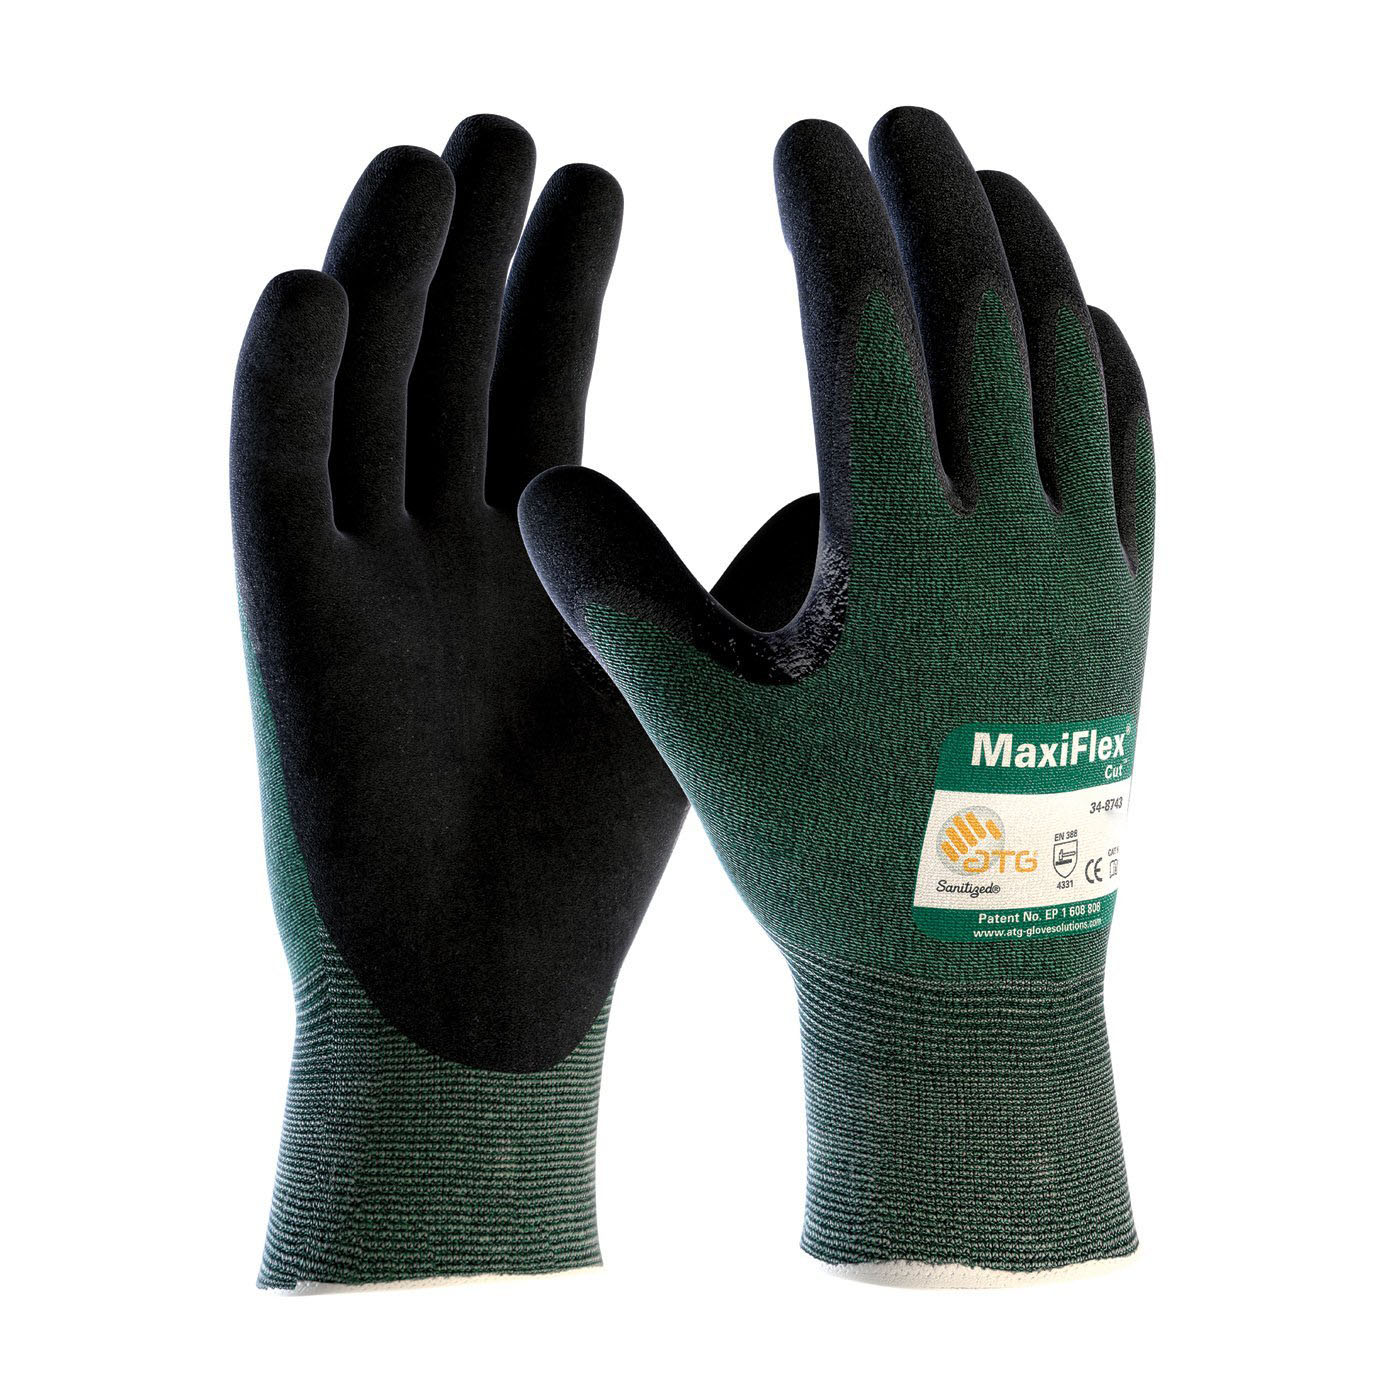 MaxiFlex Cut 34-8743 Nitrile Coated Work Gloves with Green Knit Shell and Premium Nitrile Coated Micro-Foam Grip, XL, 3 Pair